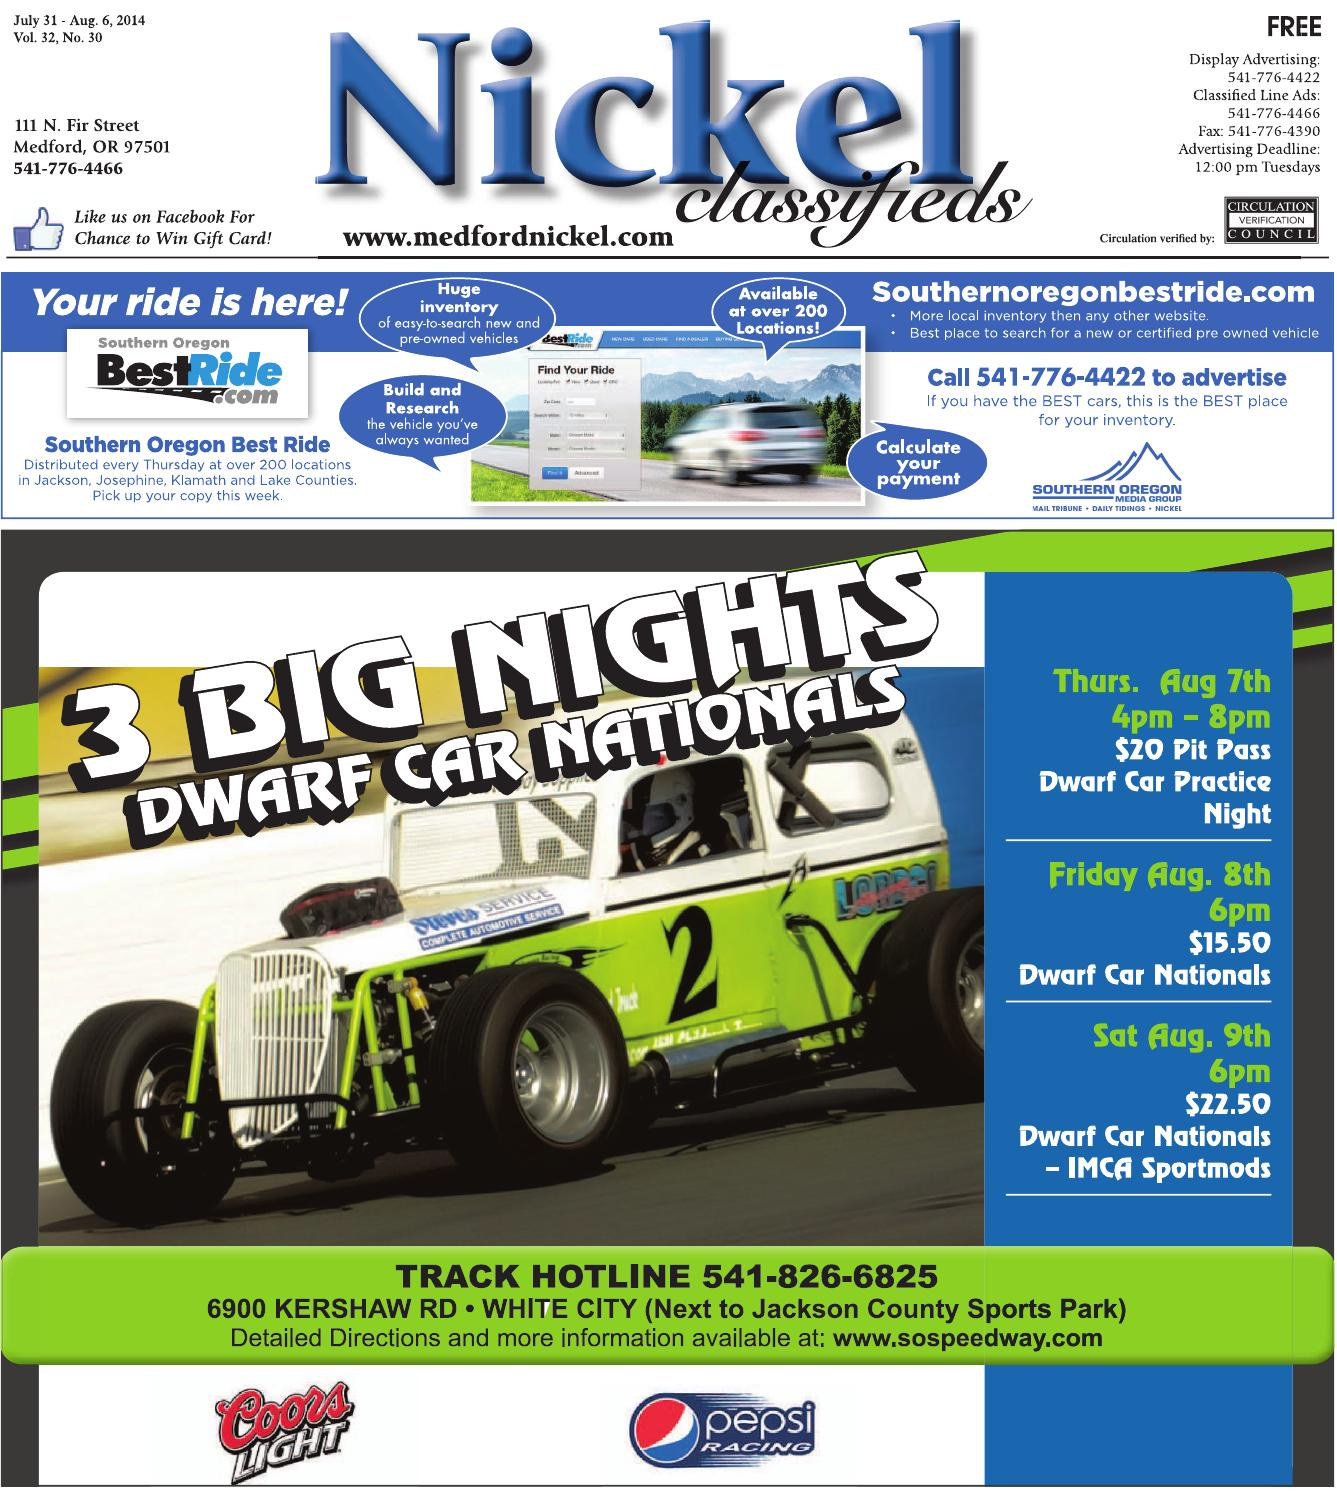 July 31, 2014 Nickel Classifieds by The Nickel - issuu